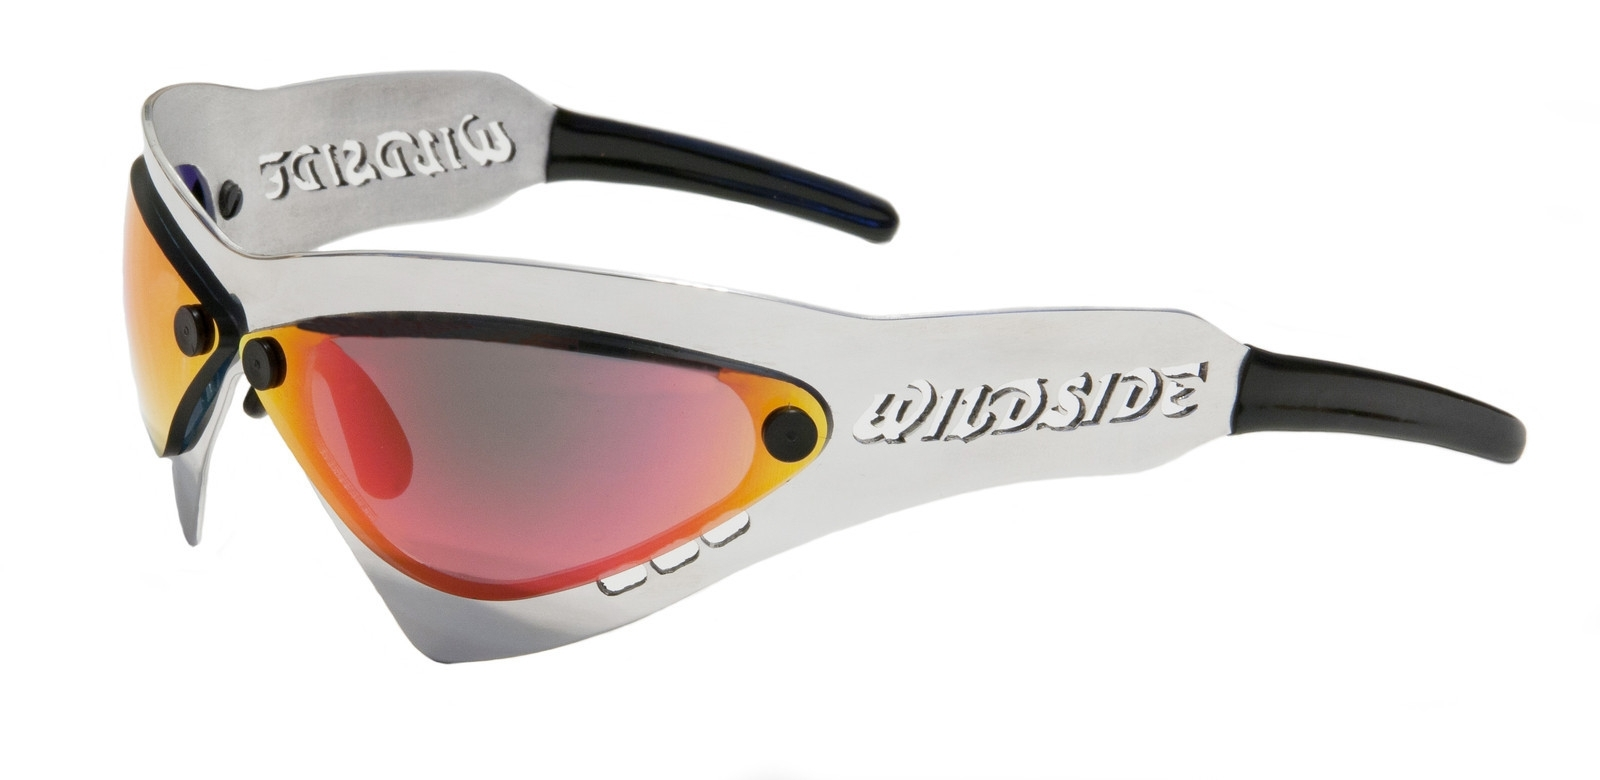 WildSide Aluminum Motorcycle Sunglasses